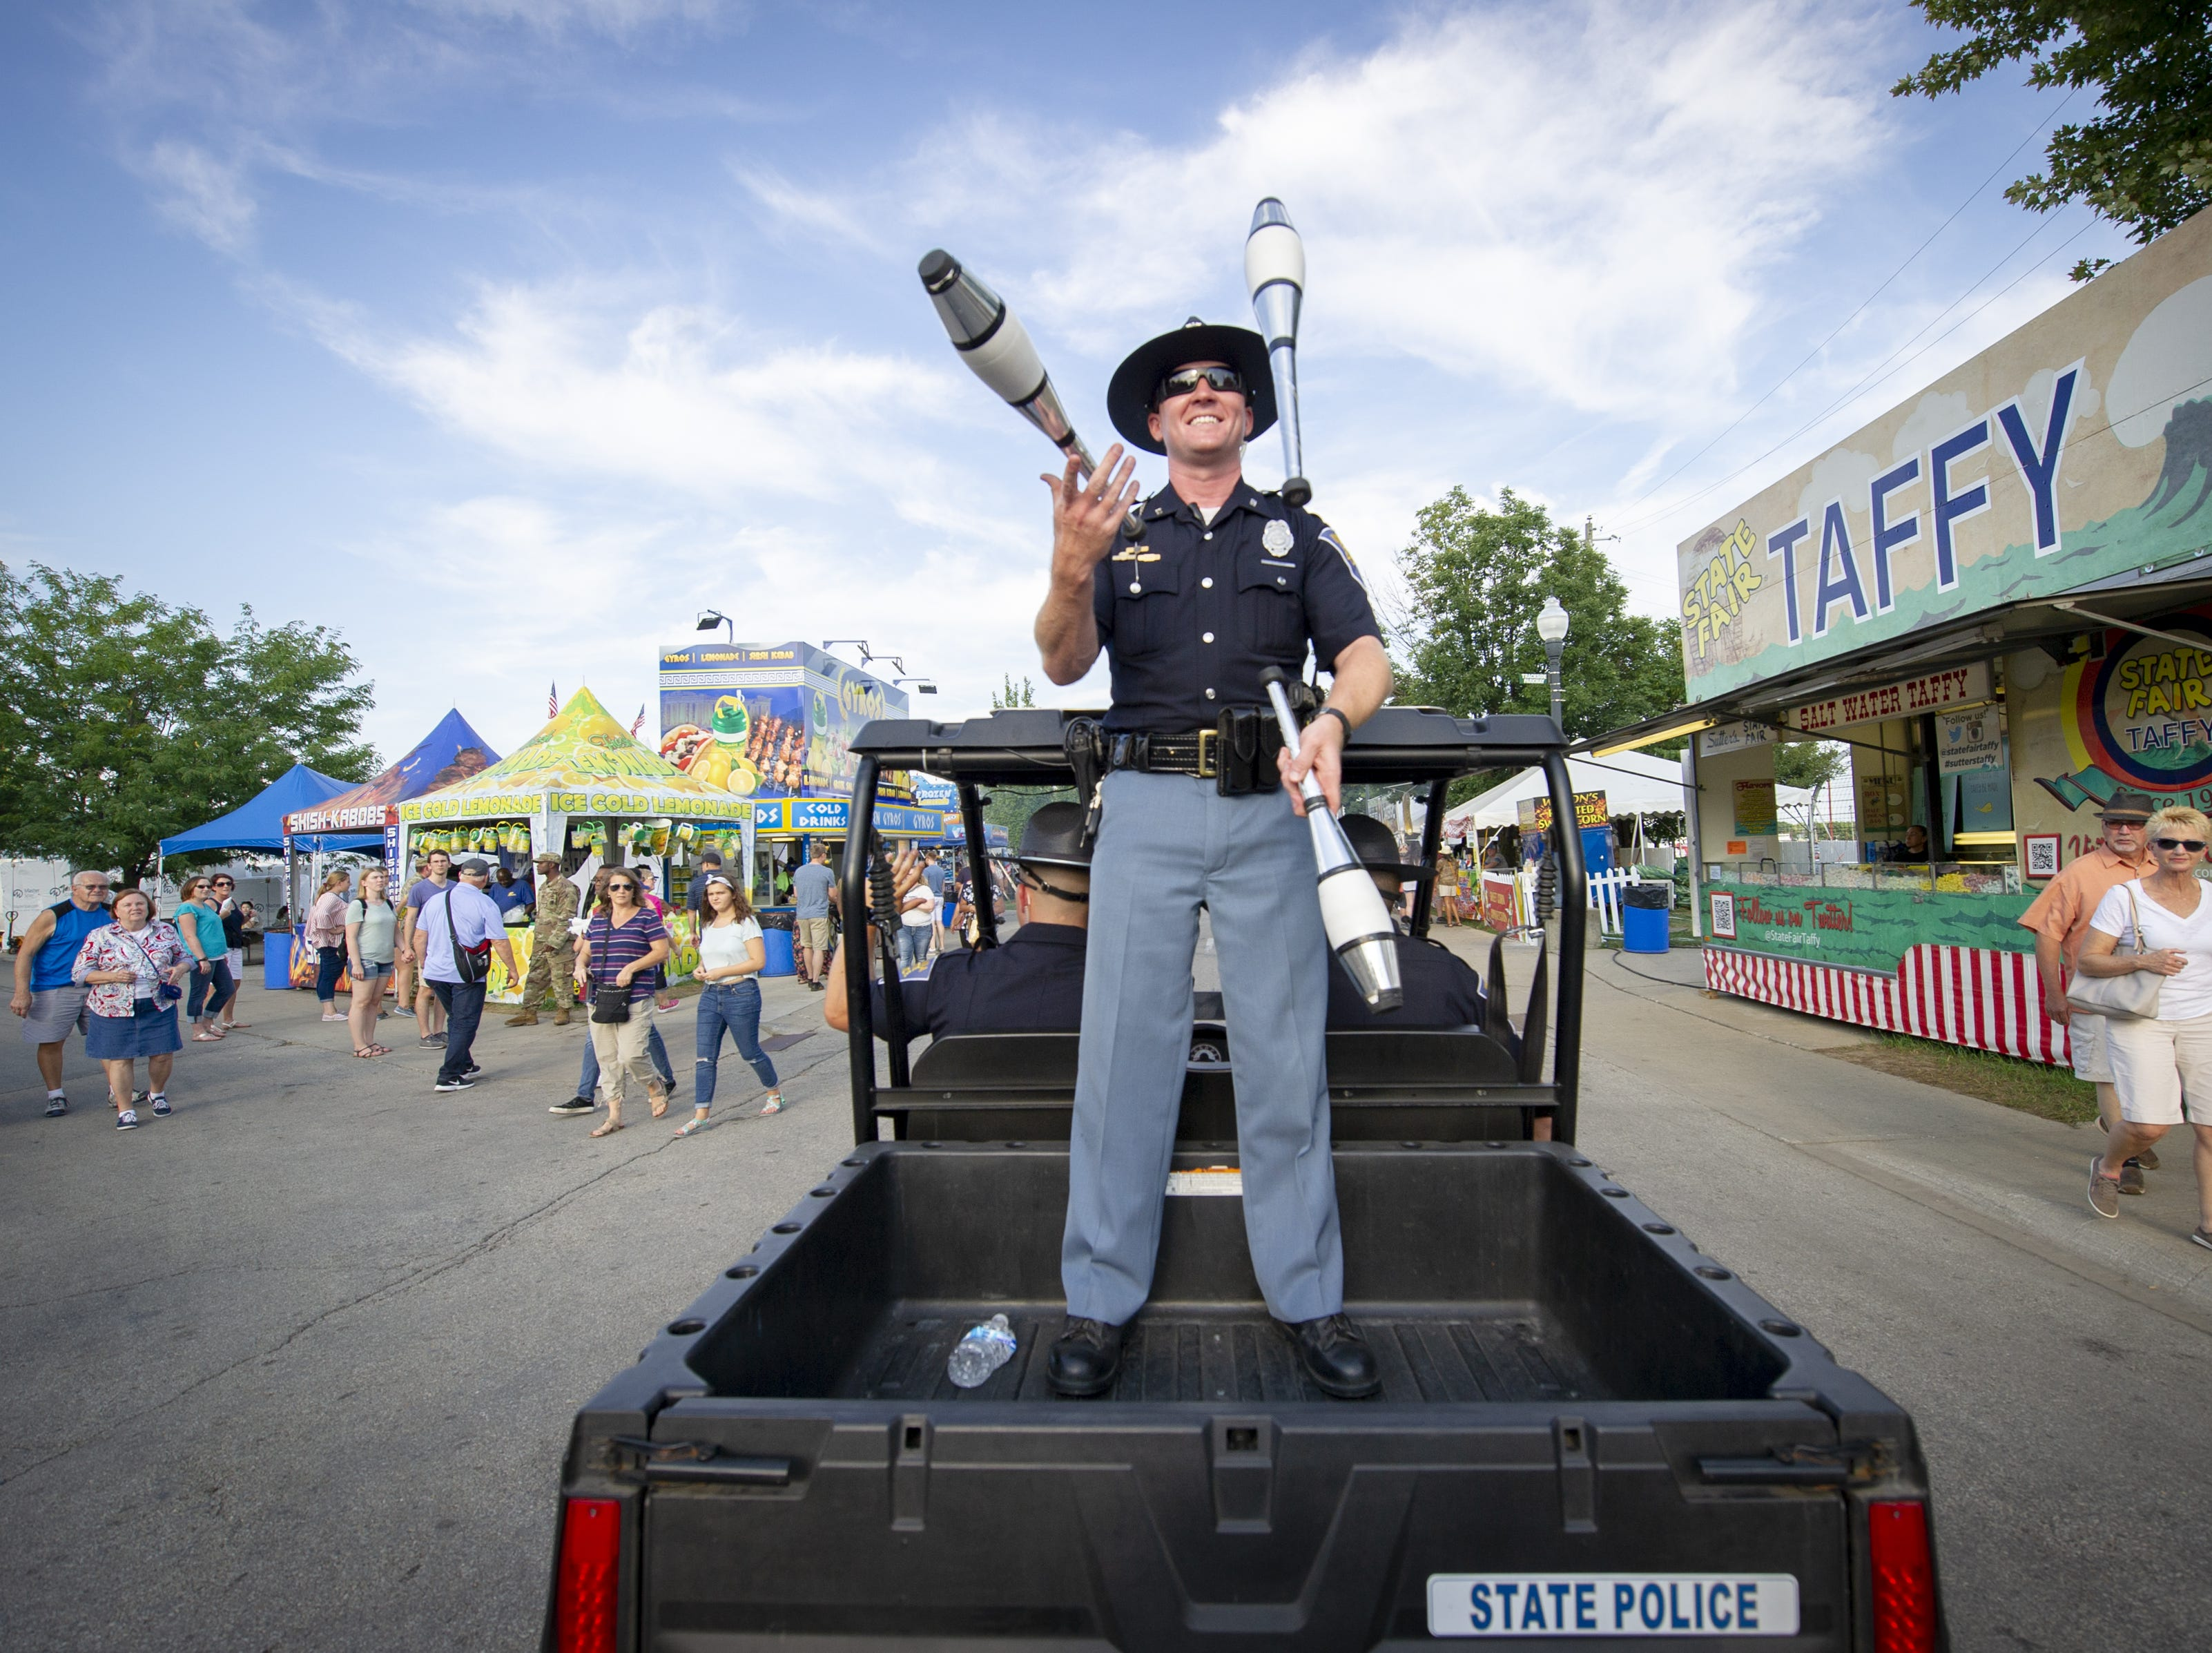 Indiana State Trooper Jon Cole juggles from the back of a vehicle as they lead an evening parade around the grounds at the Indiana State Fair, Friday, Aug. 10, 2018.